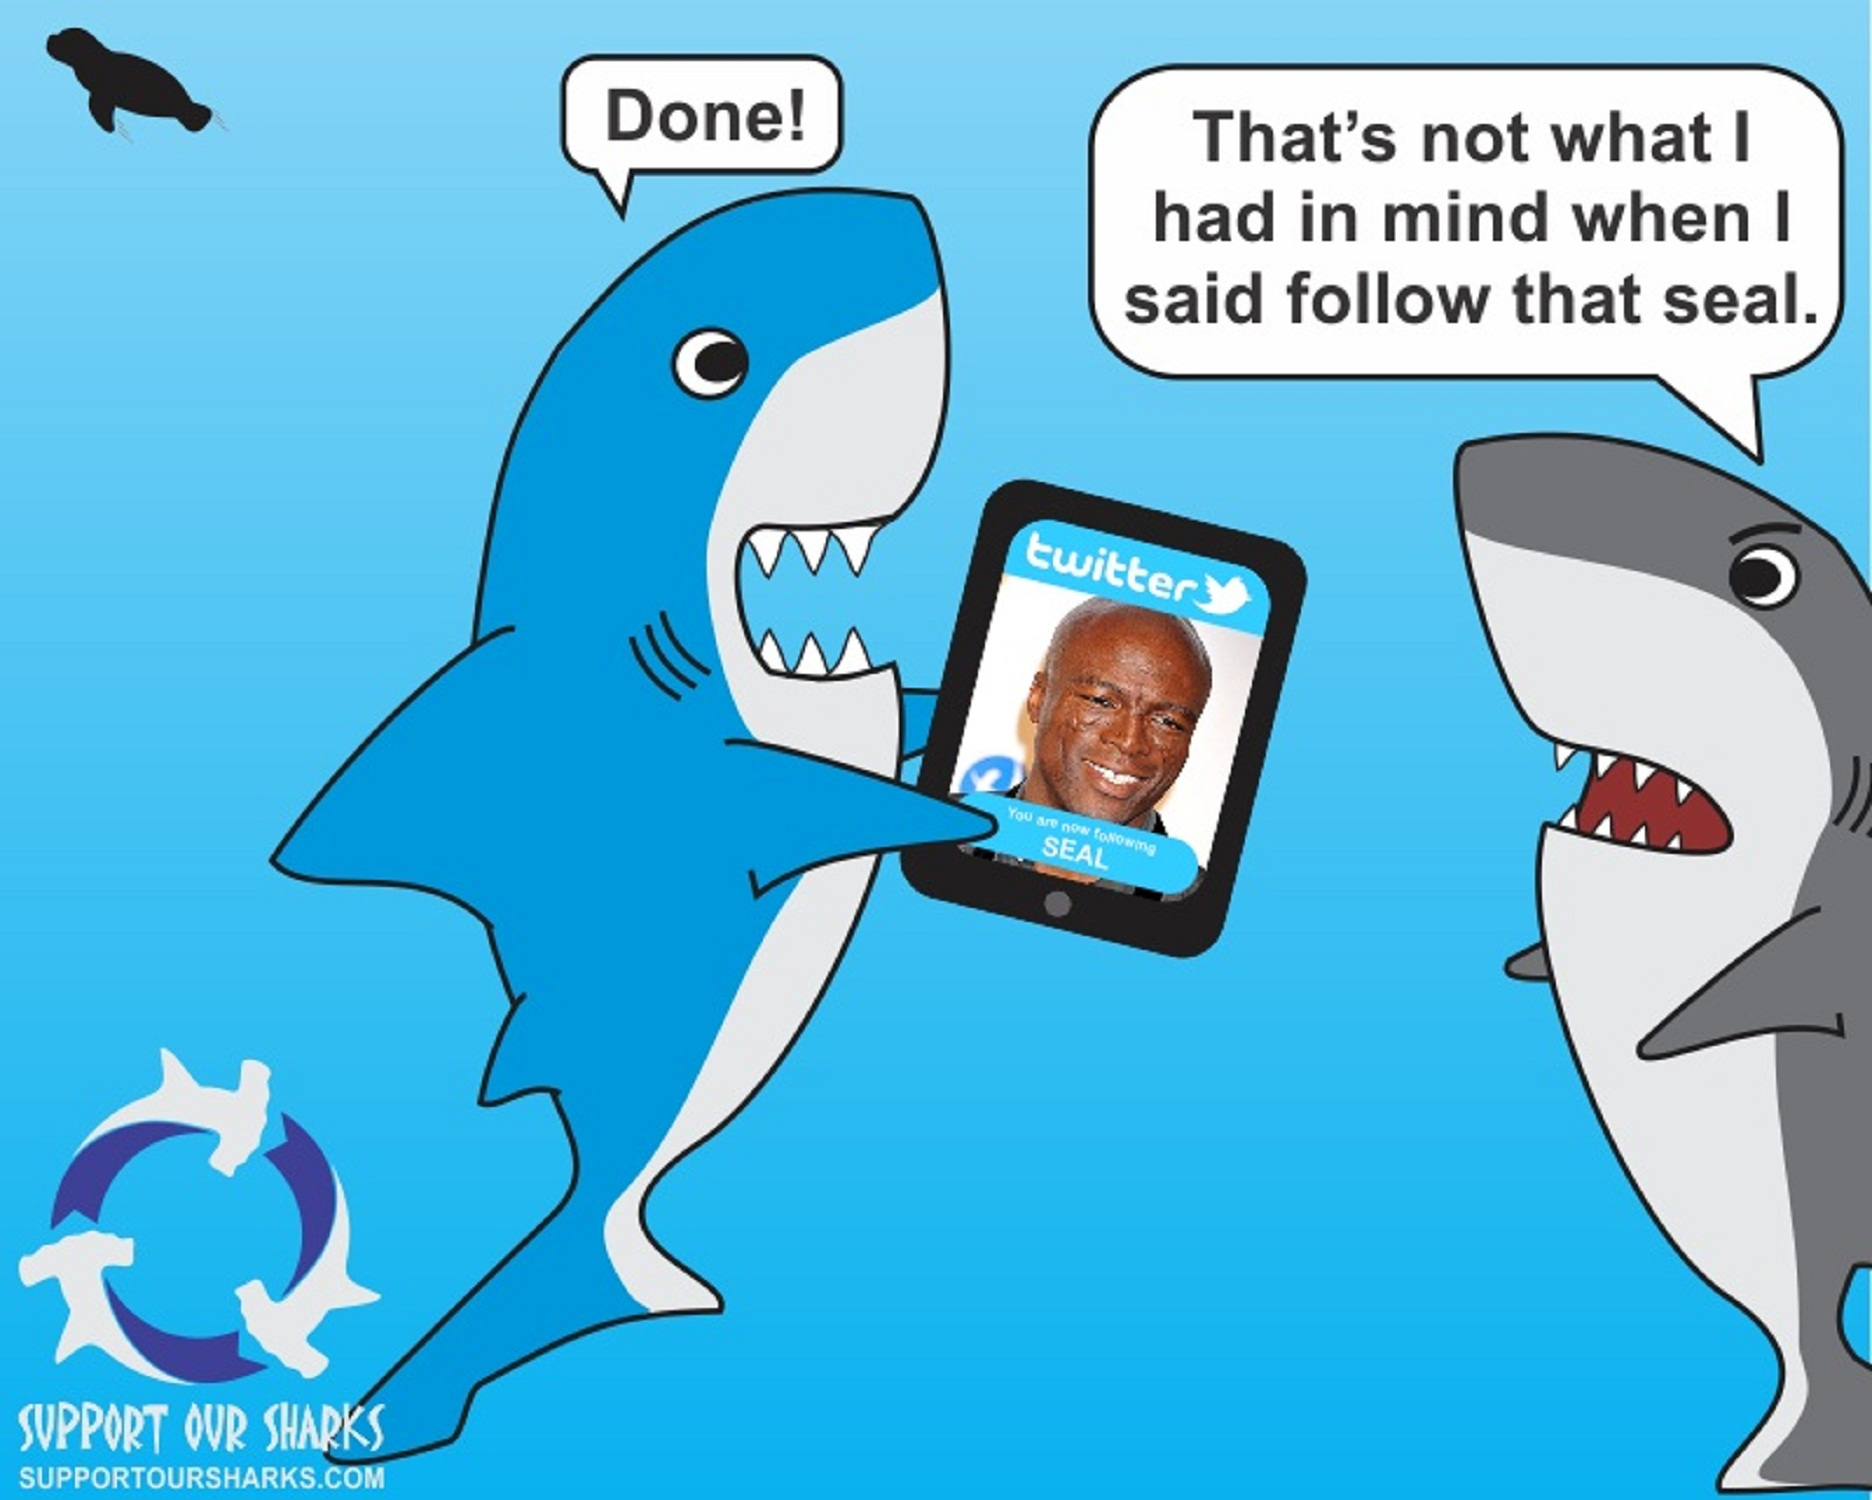 Follow That Seal Shark cartoons by Support Our Sharks